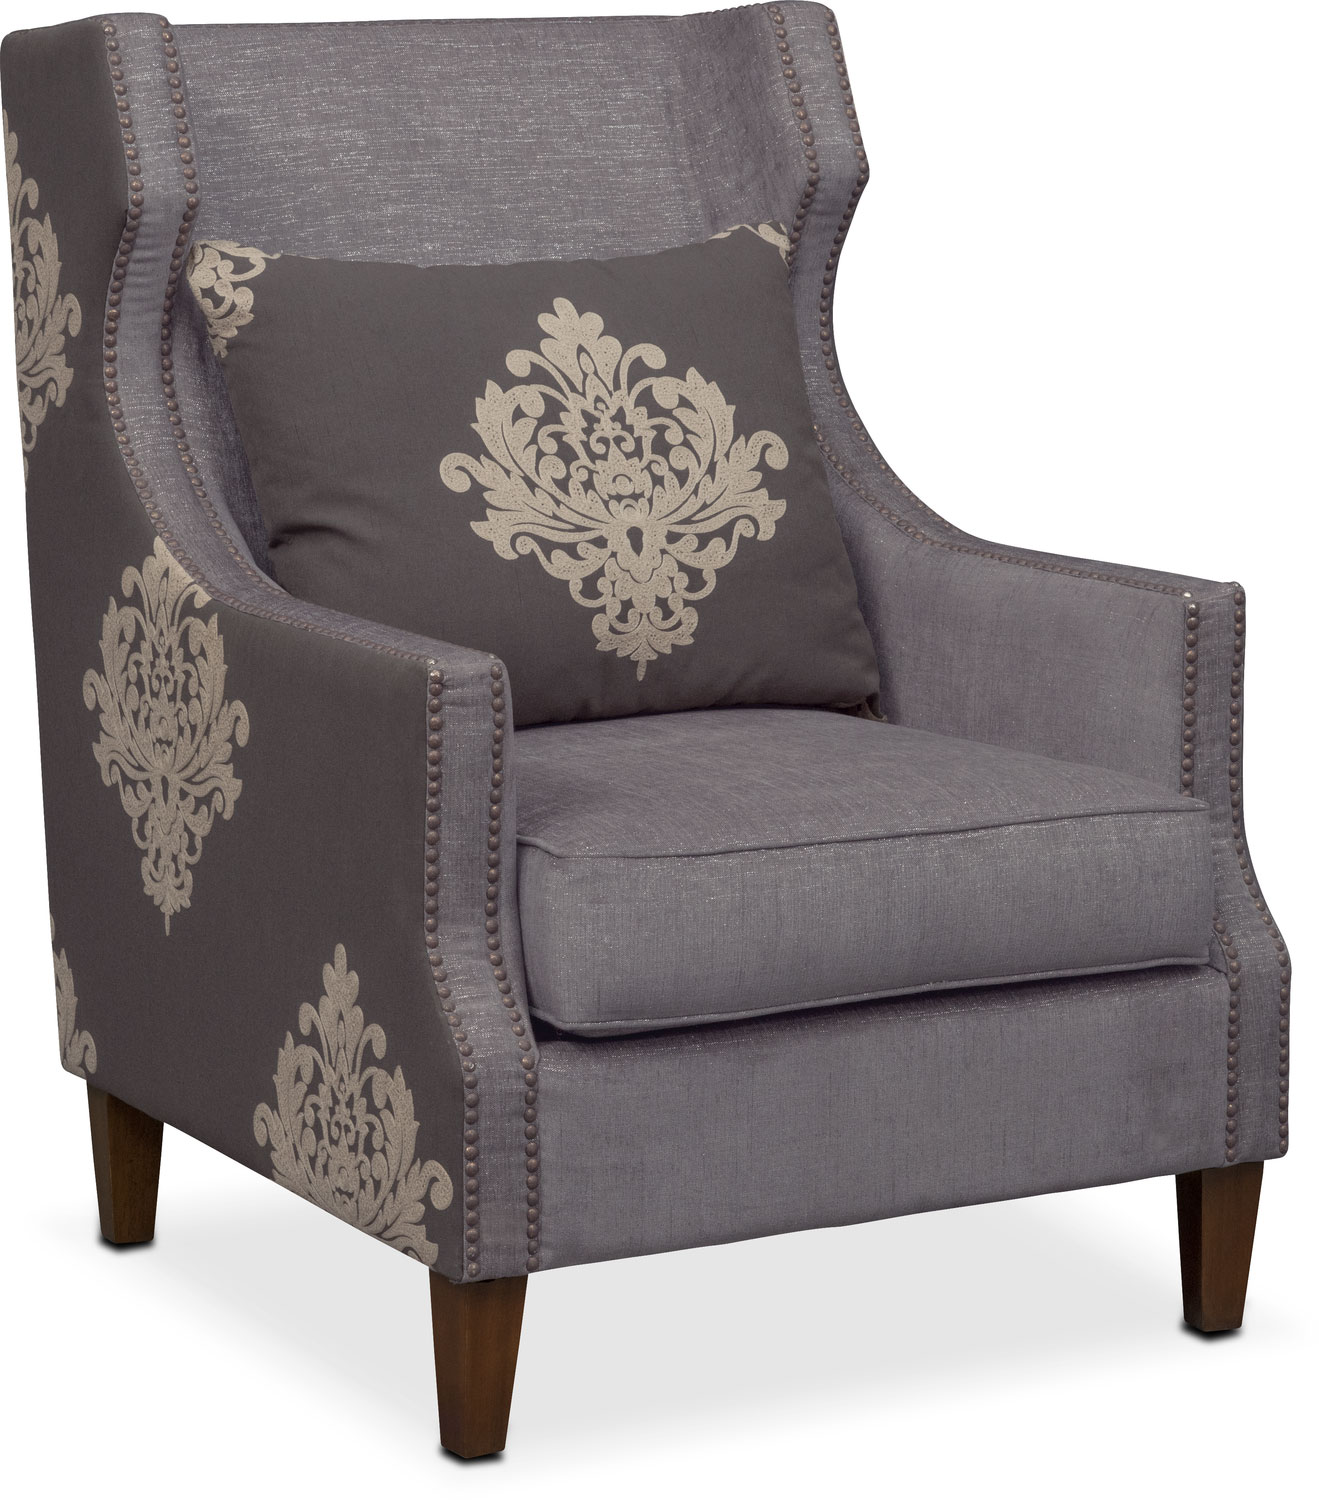 Accent Chairs Brie Printed Fabric Accent Chair Quick Ship Sophie Floral Accent Chair White